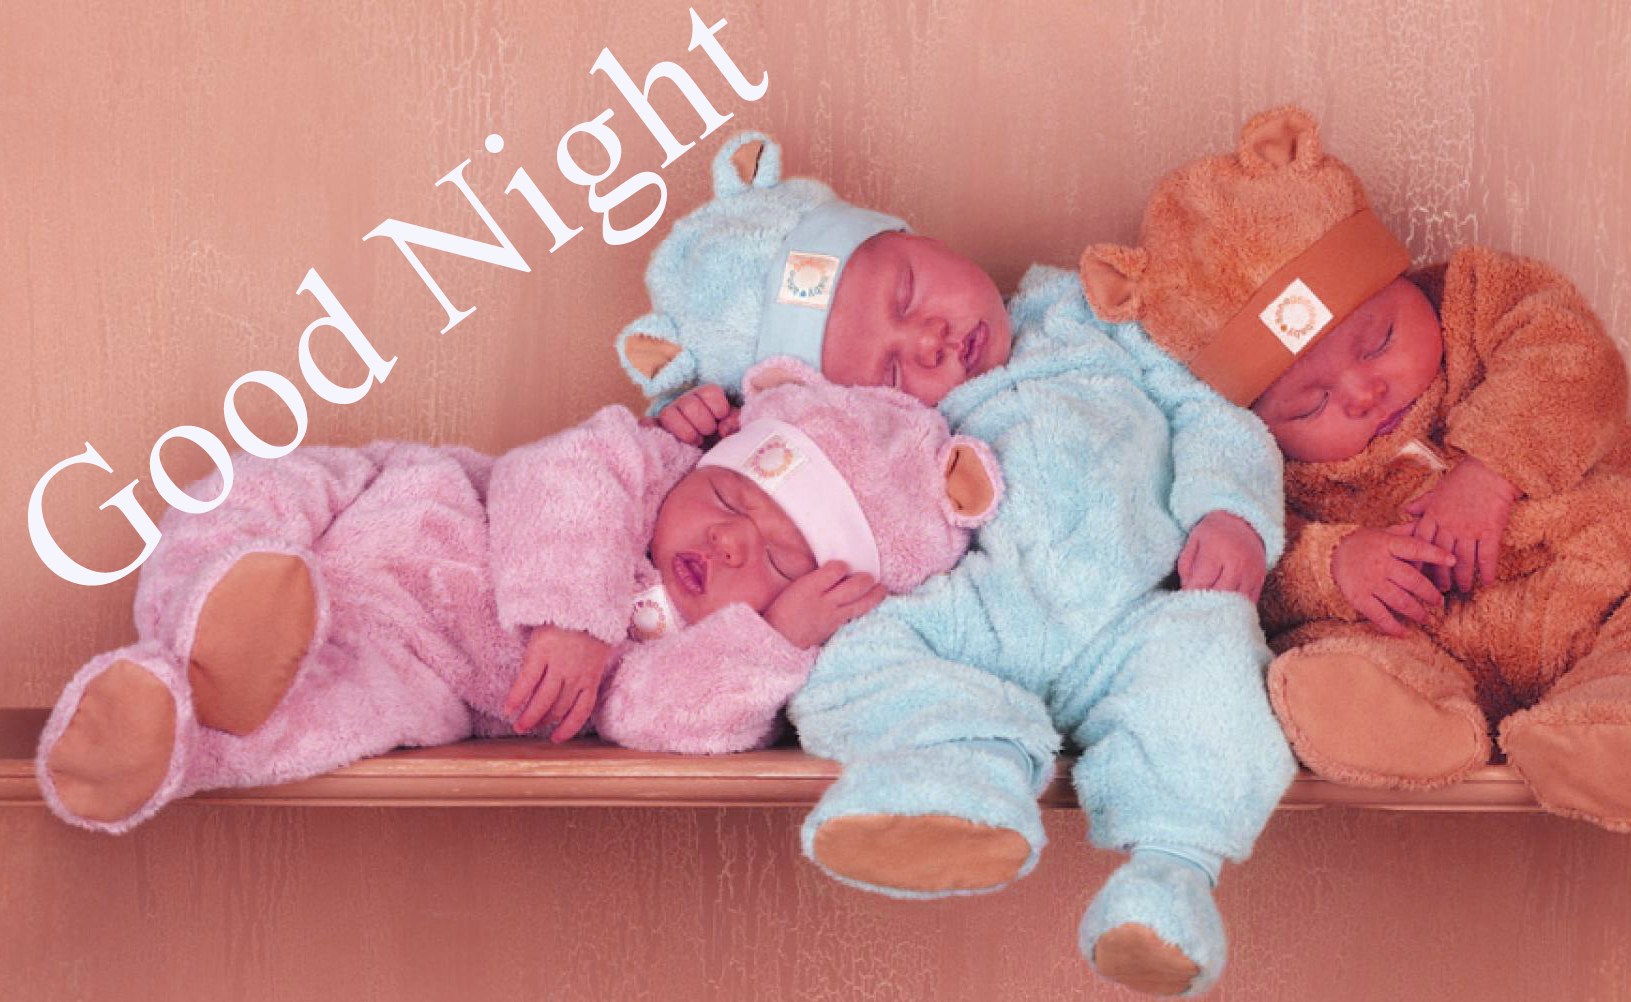 GOOD NIGHT IMAGES WITH CUTE BABY BOYS & GIRLS WALLPAPER PICS DOWNLOAD